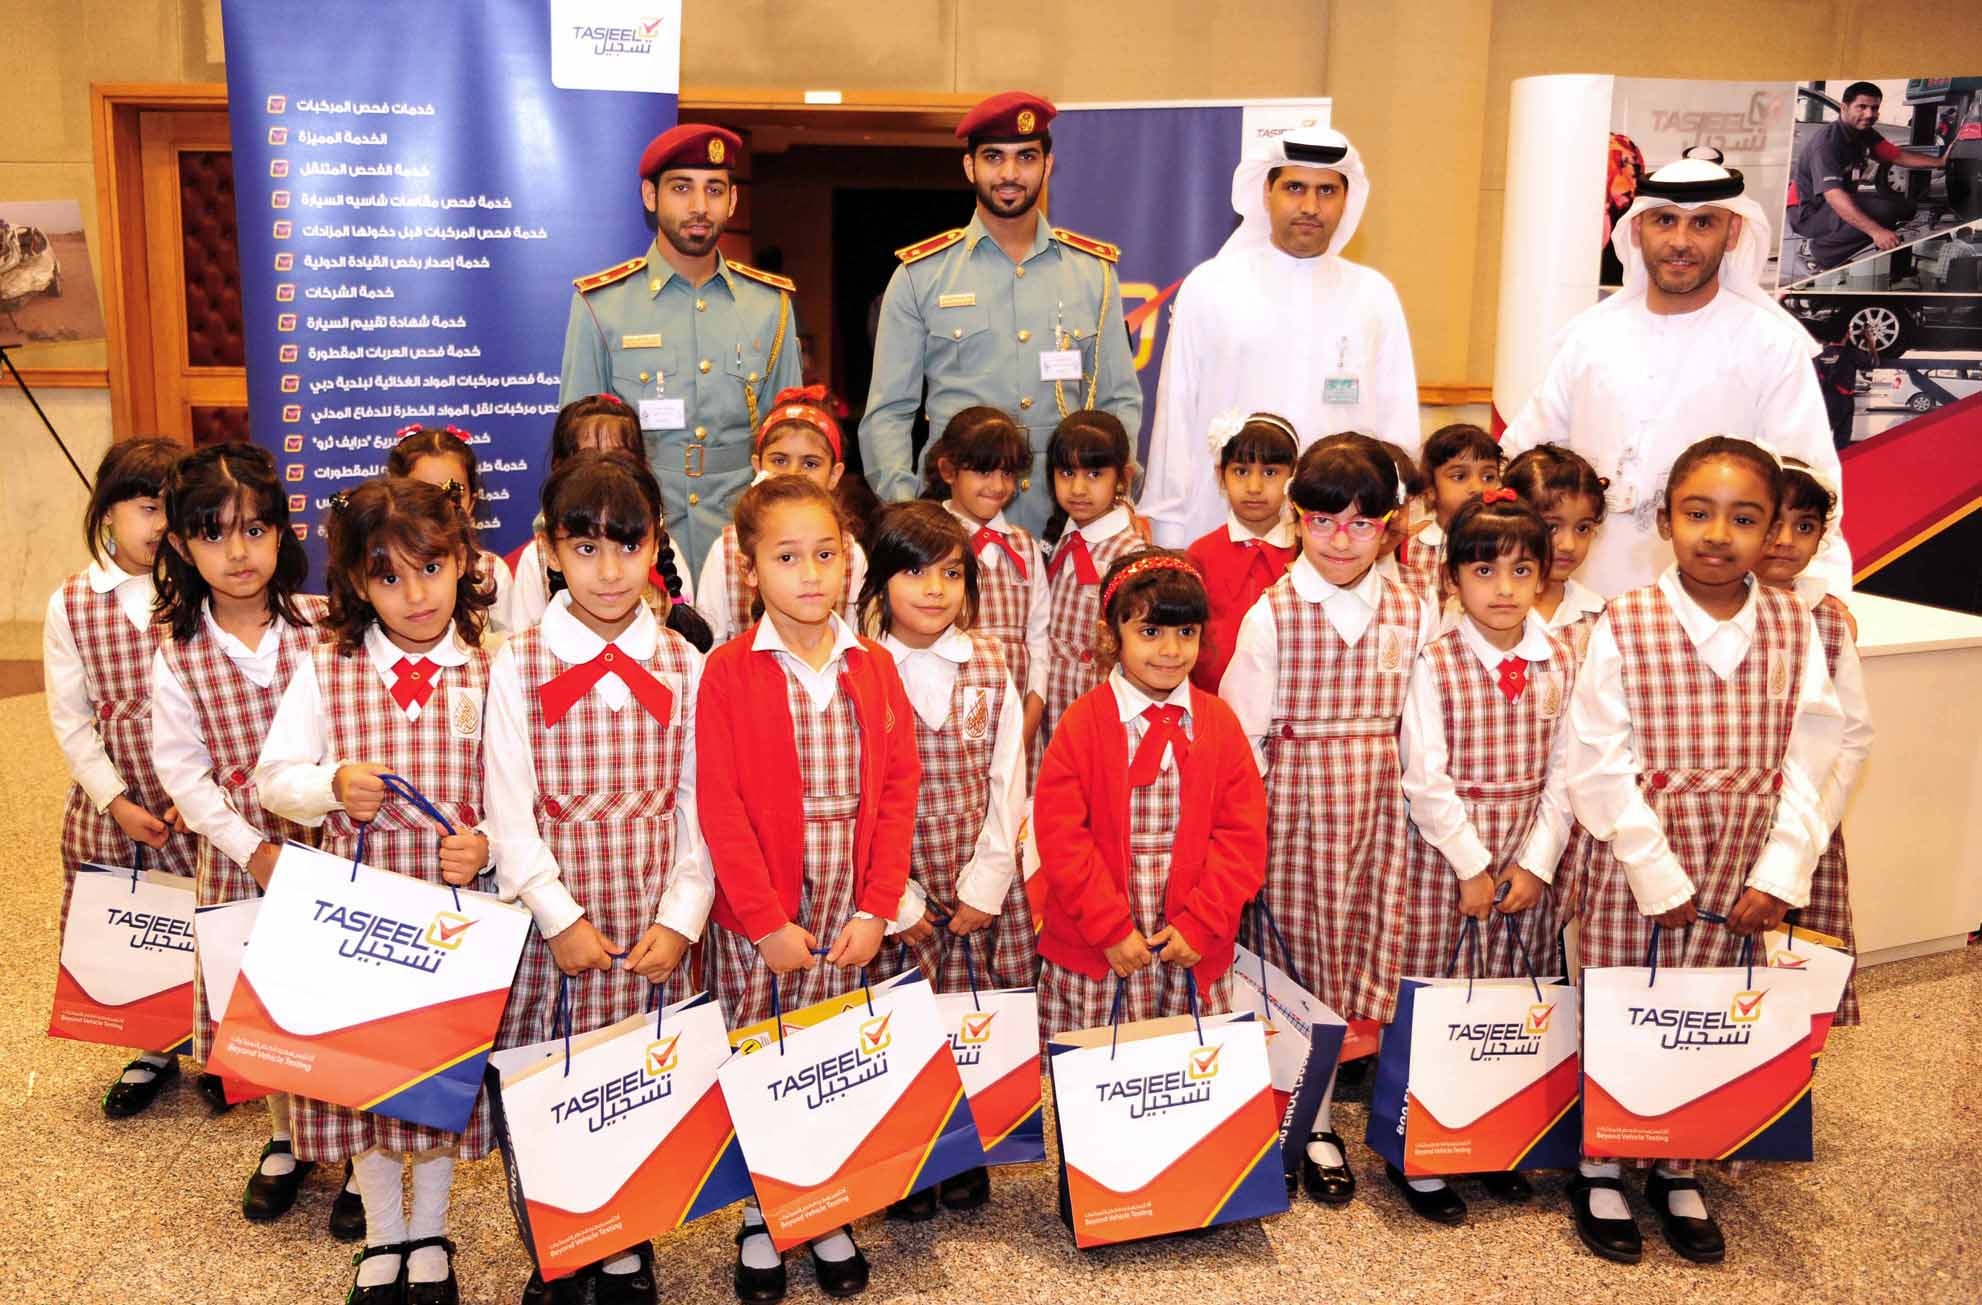 Tasjeel promotes motor vehicle safety and safe driving with support to Sharjah Traffic Week